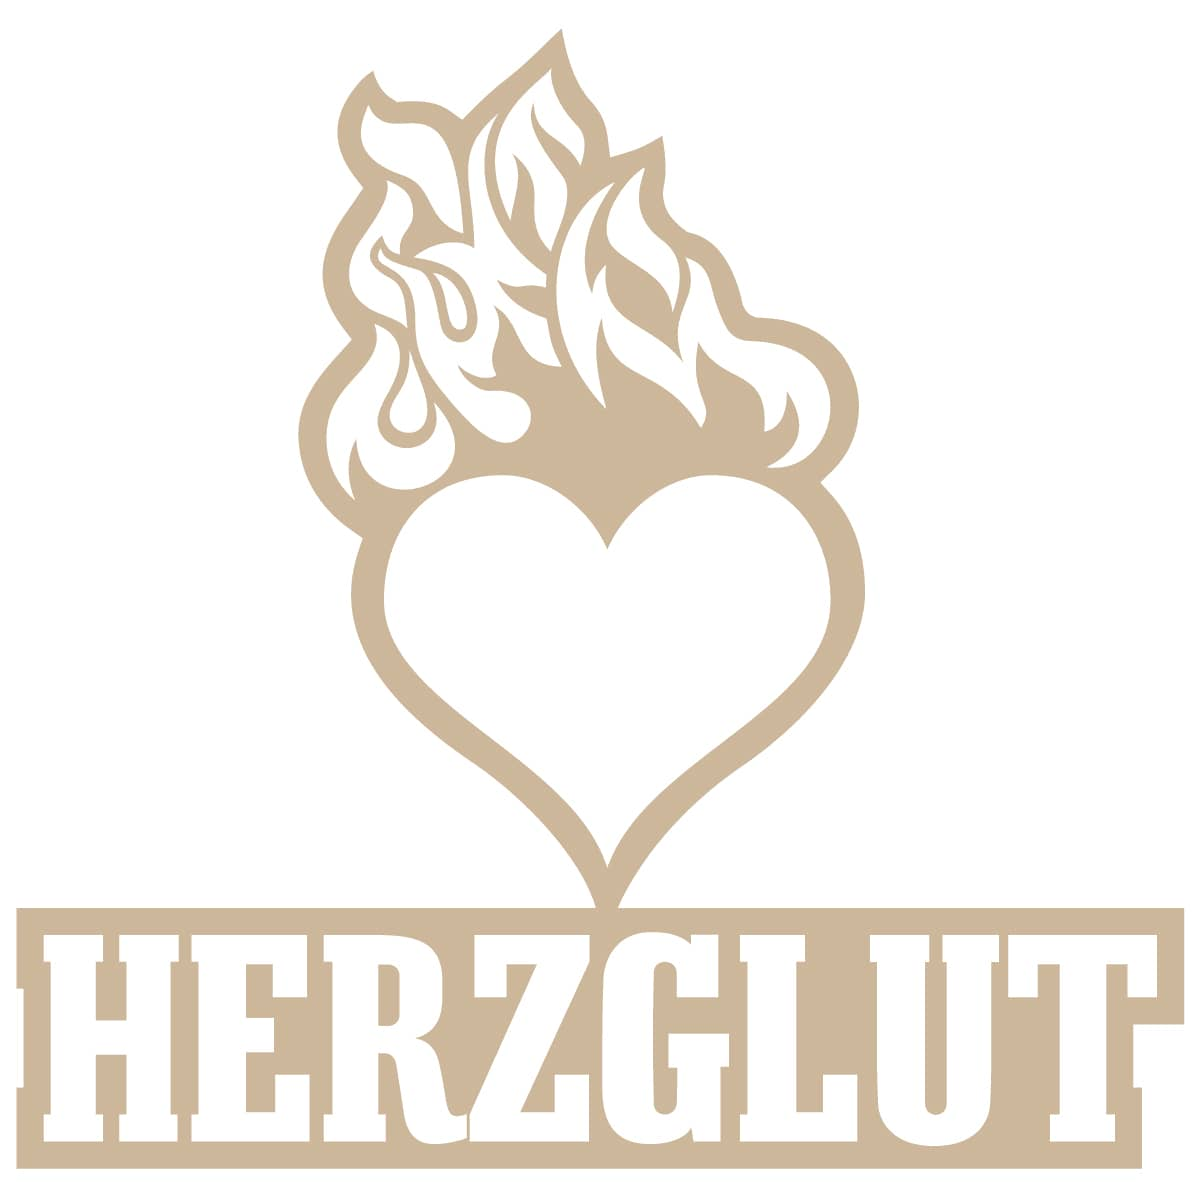 Herzglut Illustration und Verlag - Logo gezeichnet von Jerzovskaja   (Vector illustration drawn with Adobe Illustrator)